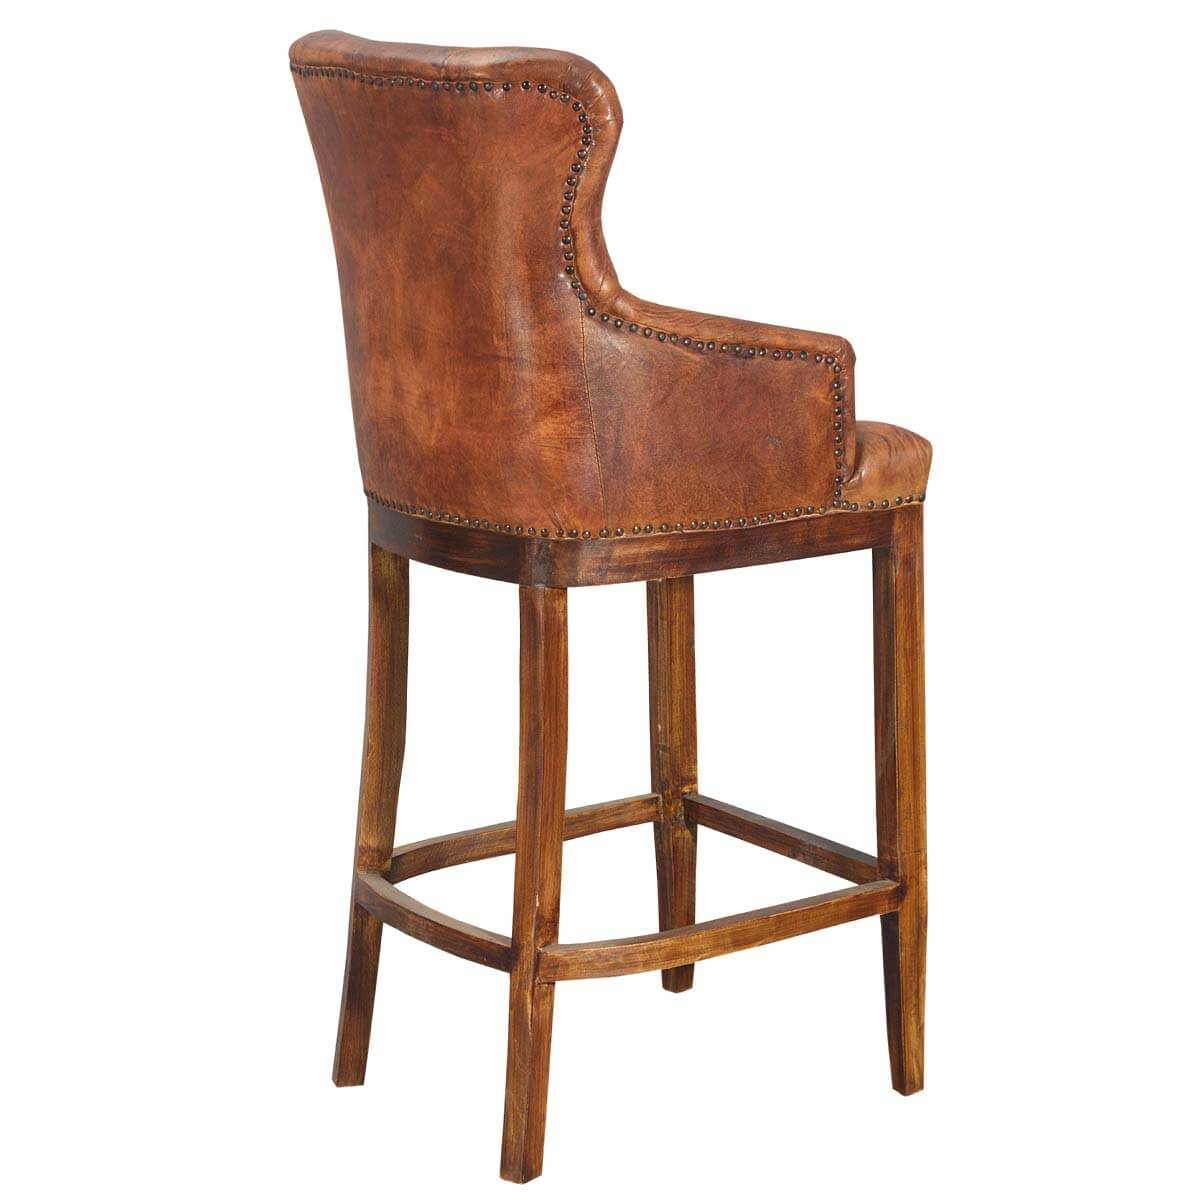 Comfortable Bar Stools Handsome And Comfortable Bar Stool With Rich Leather